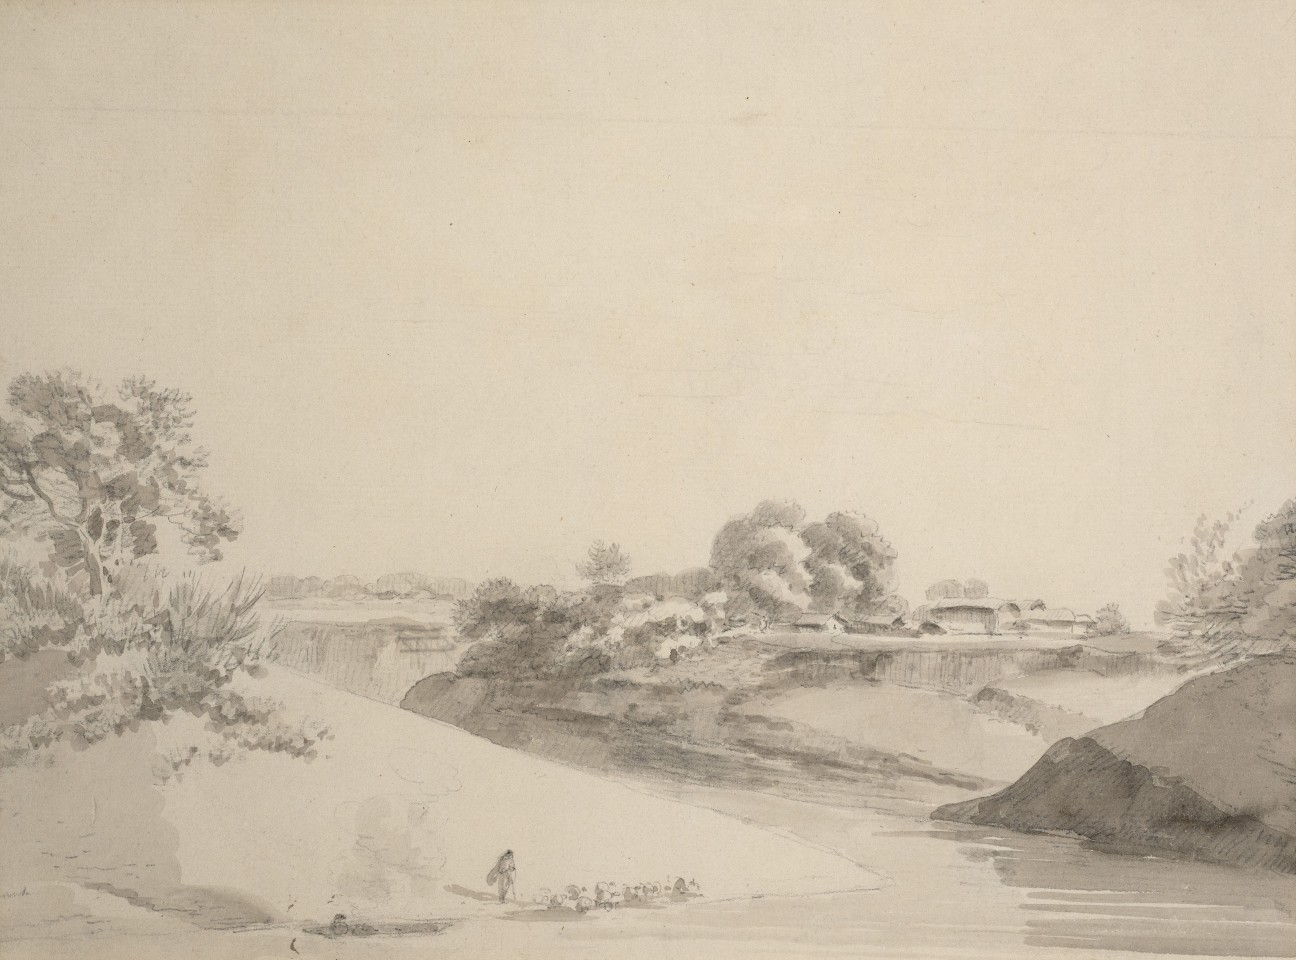 8. William Daniell (1769-1837), An Indian River Scene